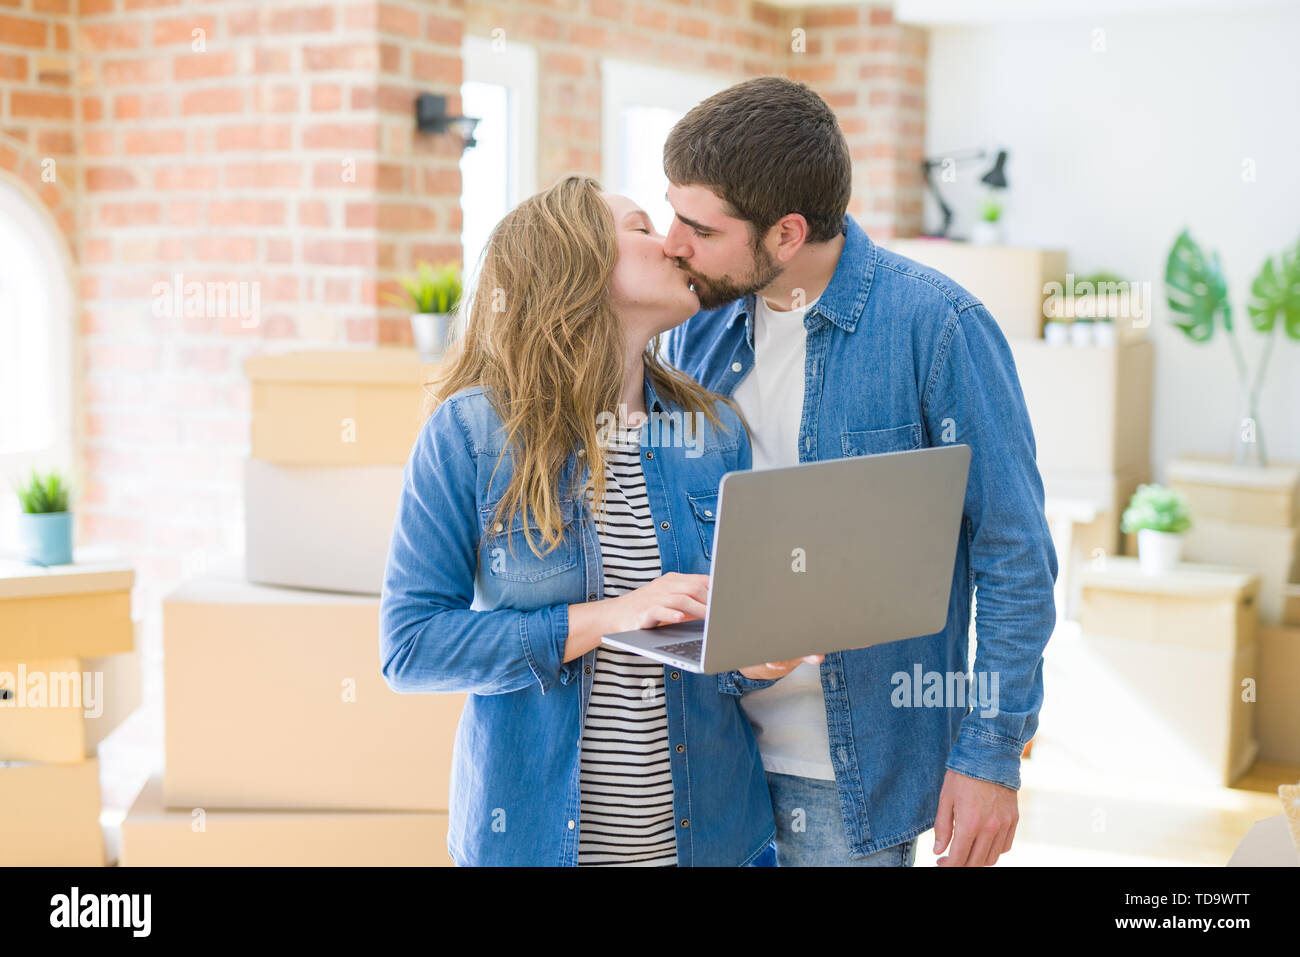 Young couple using computer laptop standing on a room around cardboard boxes, happy for moving to a new apartment - Stock Image